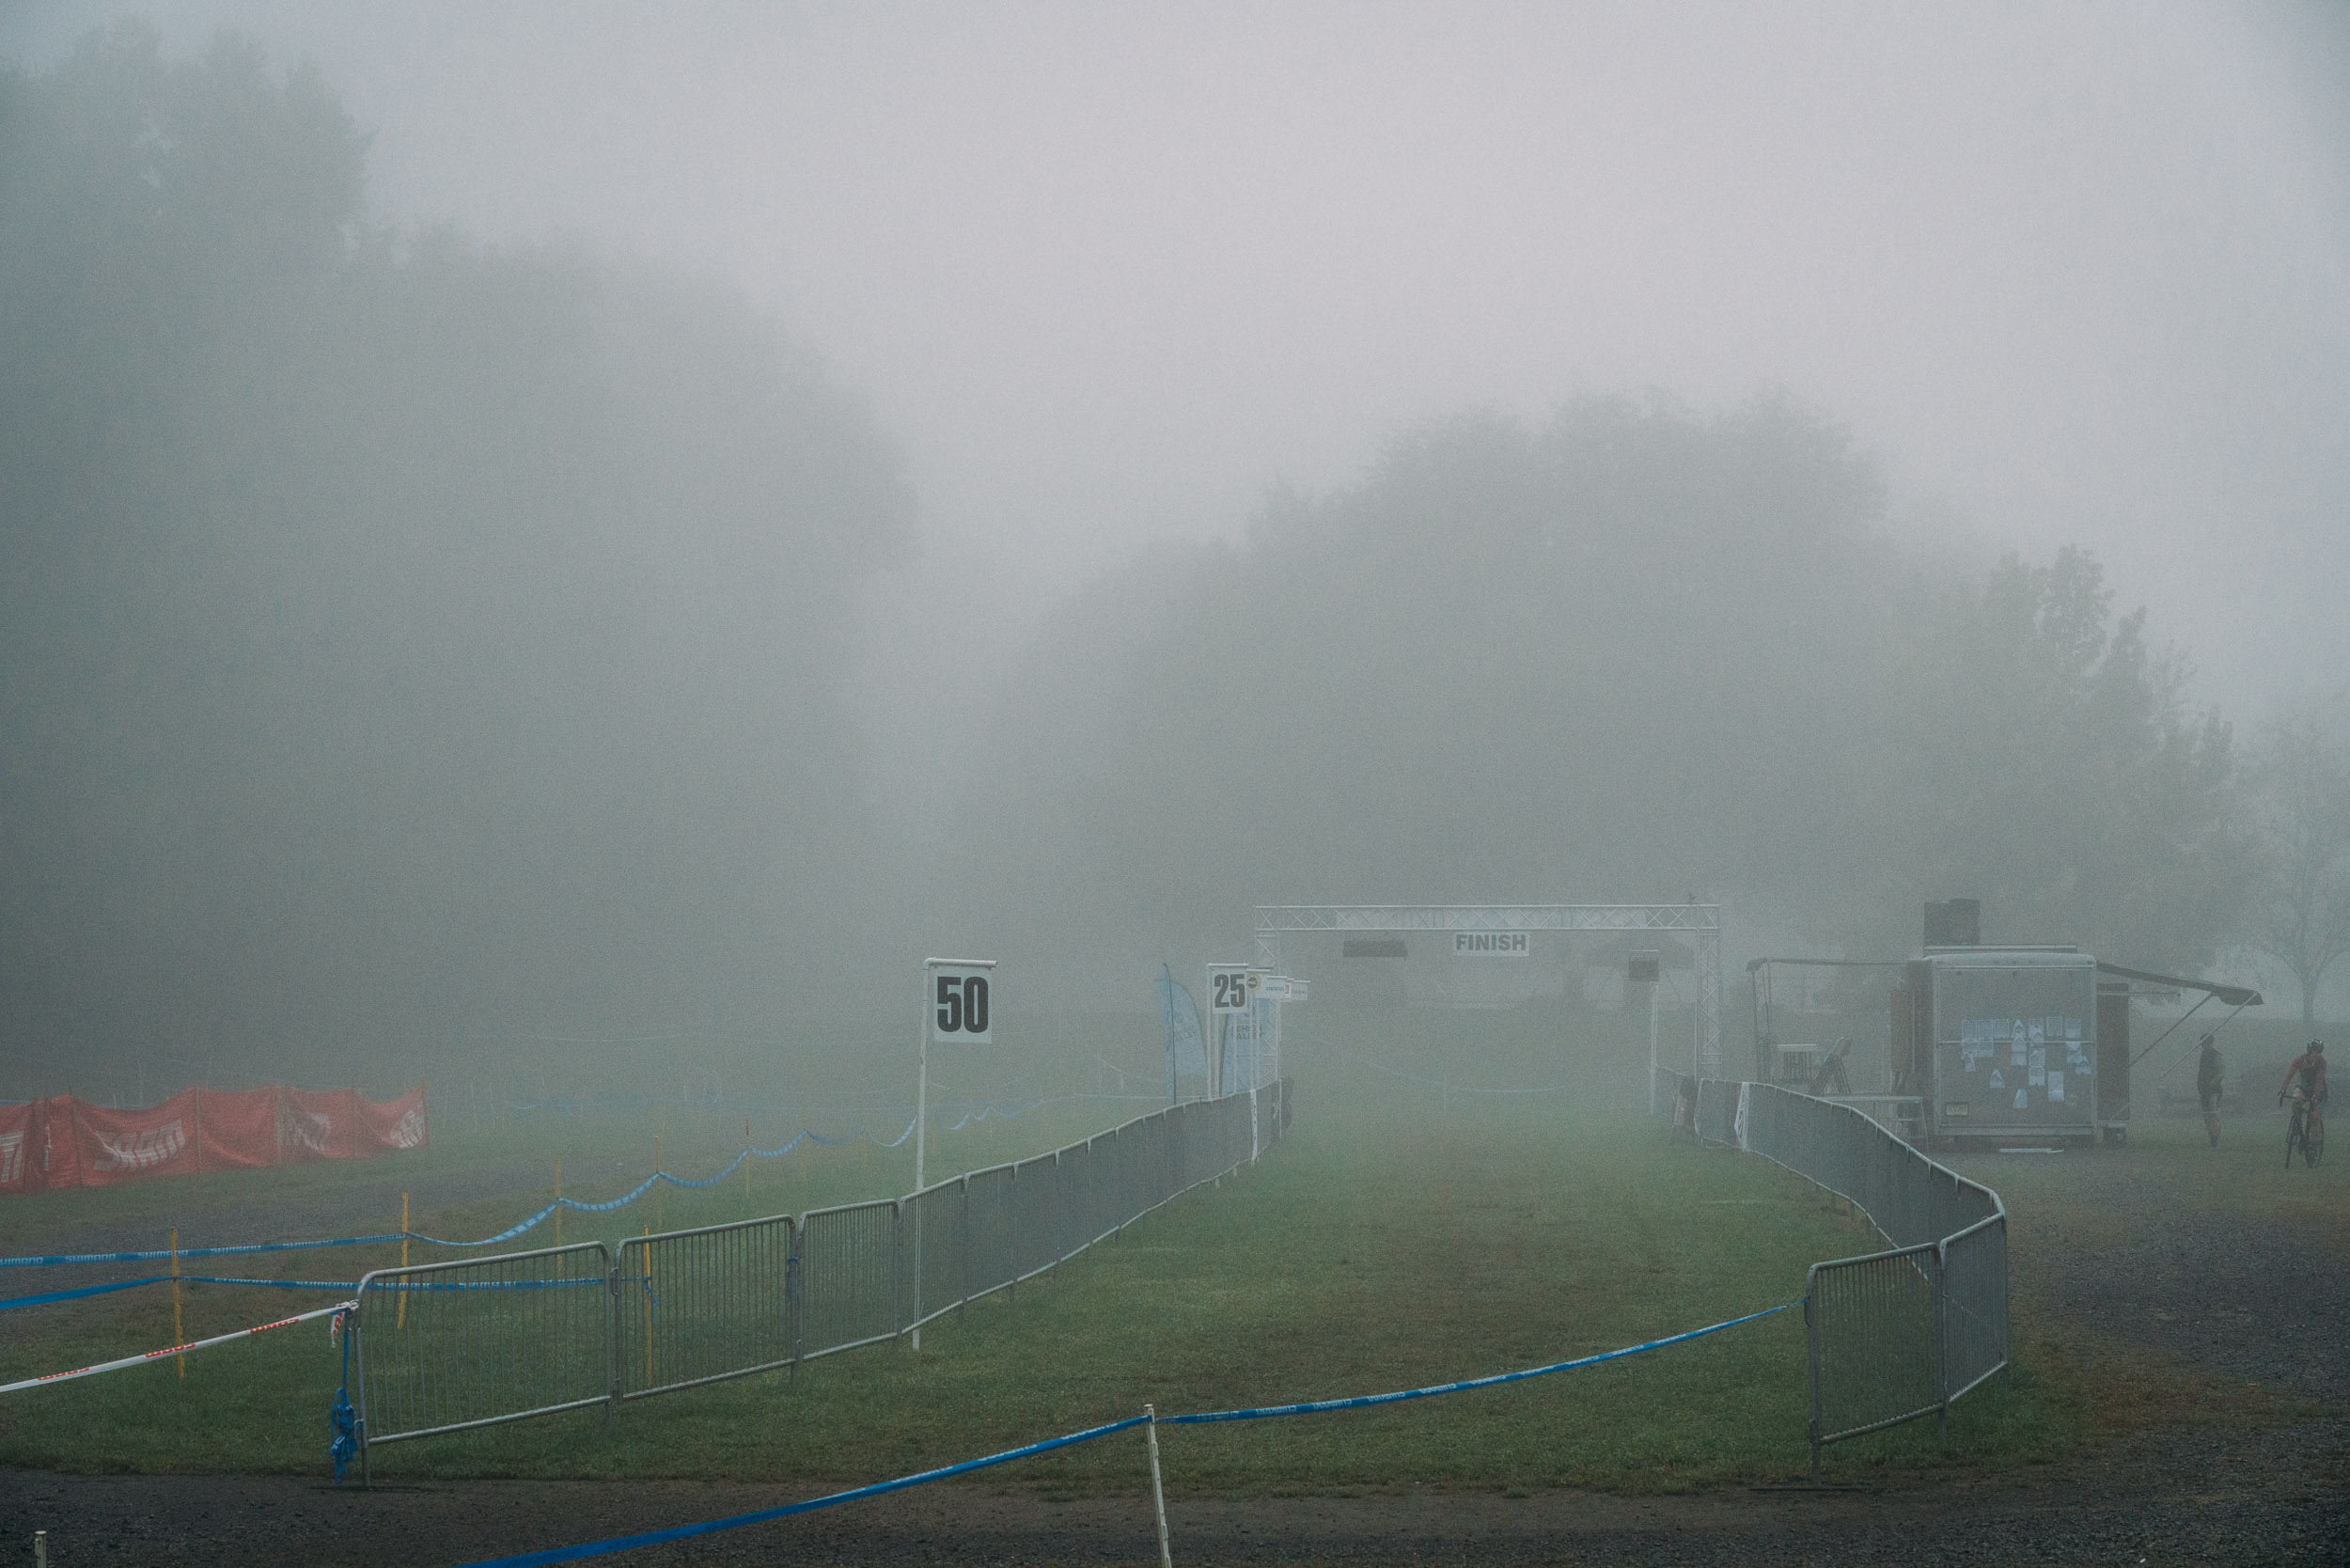 photo-rhetoric-to-be-determined-nittany-cyclocross-1213.jpg